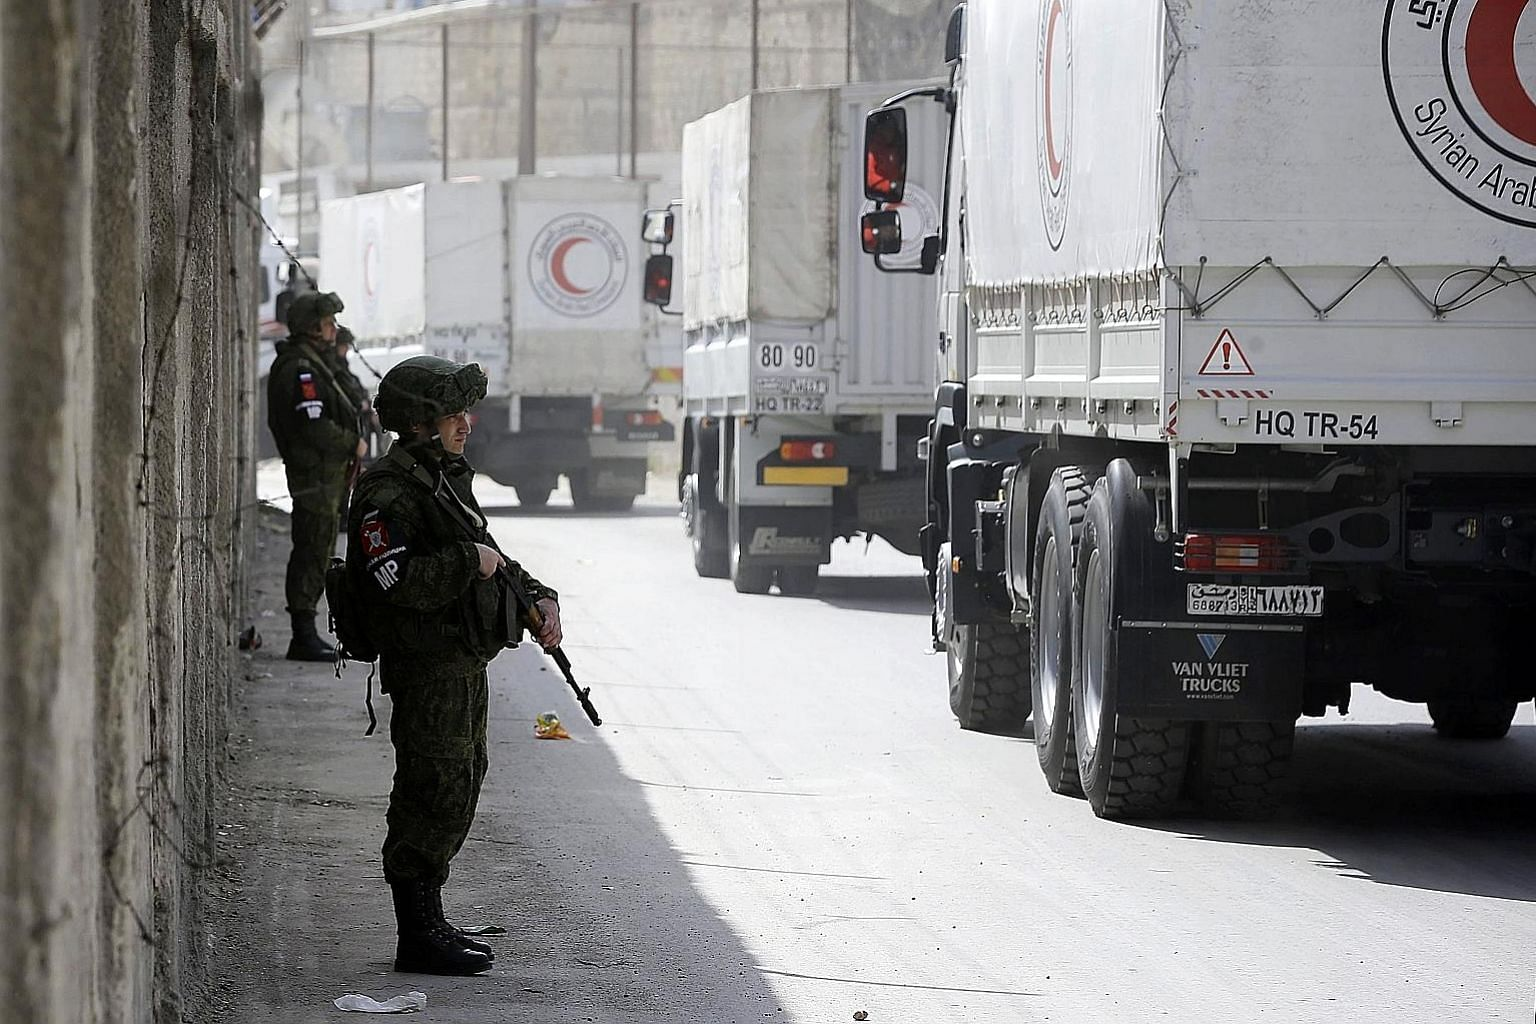 Russian soldiers standing guard as Syrian Arab Red Crescent trucks carrying aid drove by the checkpoint on the outskirts of Damascus neighbouring the eastern Ghouta region, as they headed towards the rebel-held enclave yesterday.